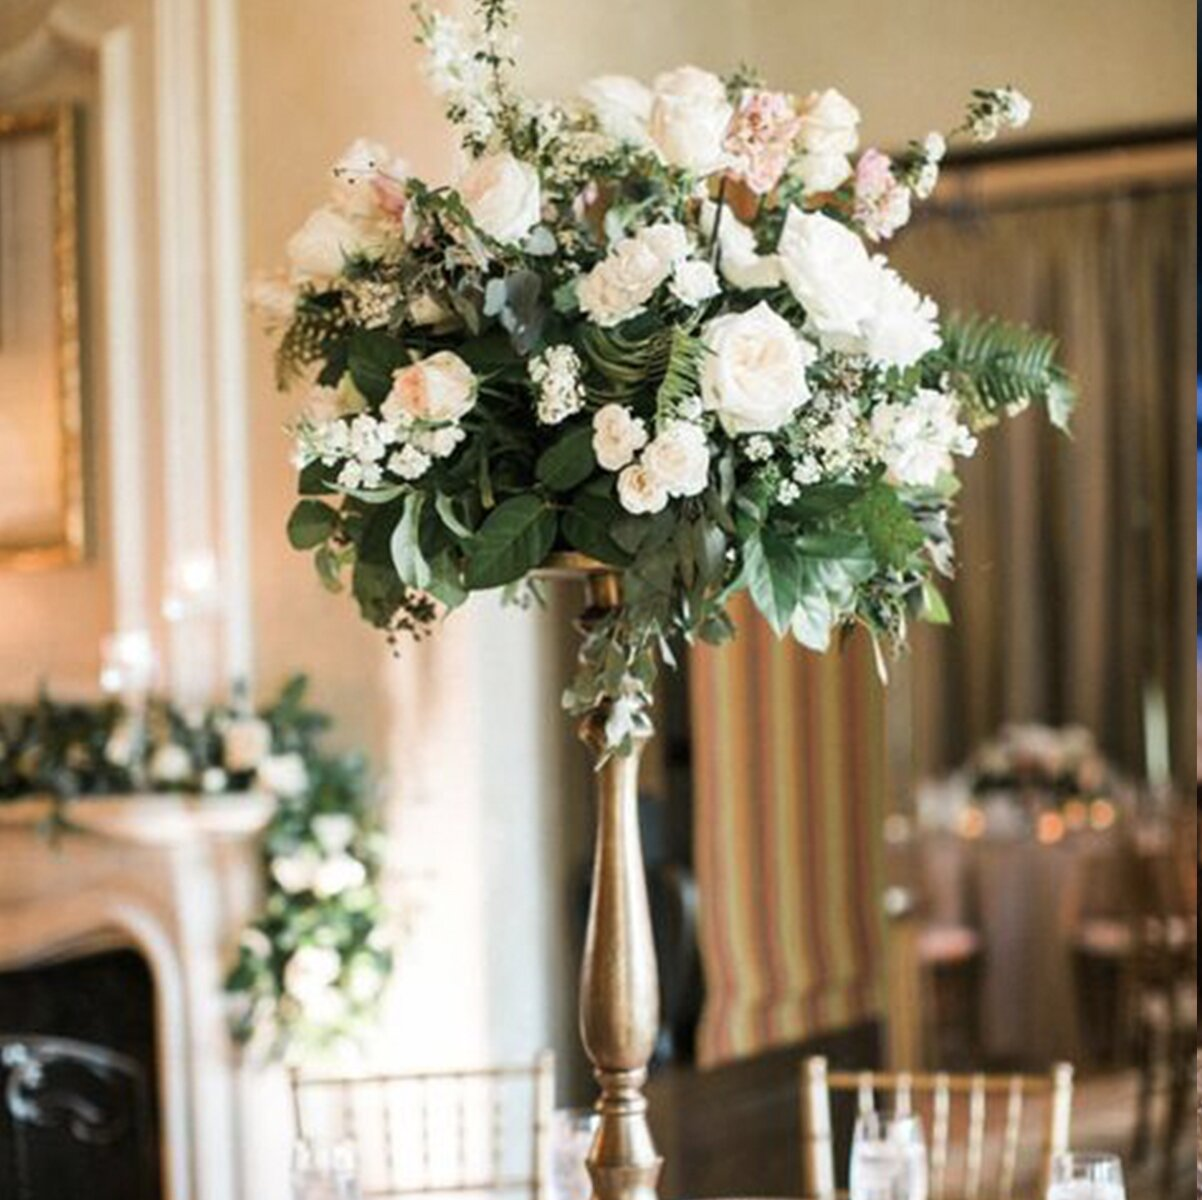 sydney-wedding-florist-flowers-price-how-much-tall-arrangement-gold-stand